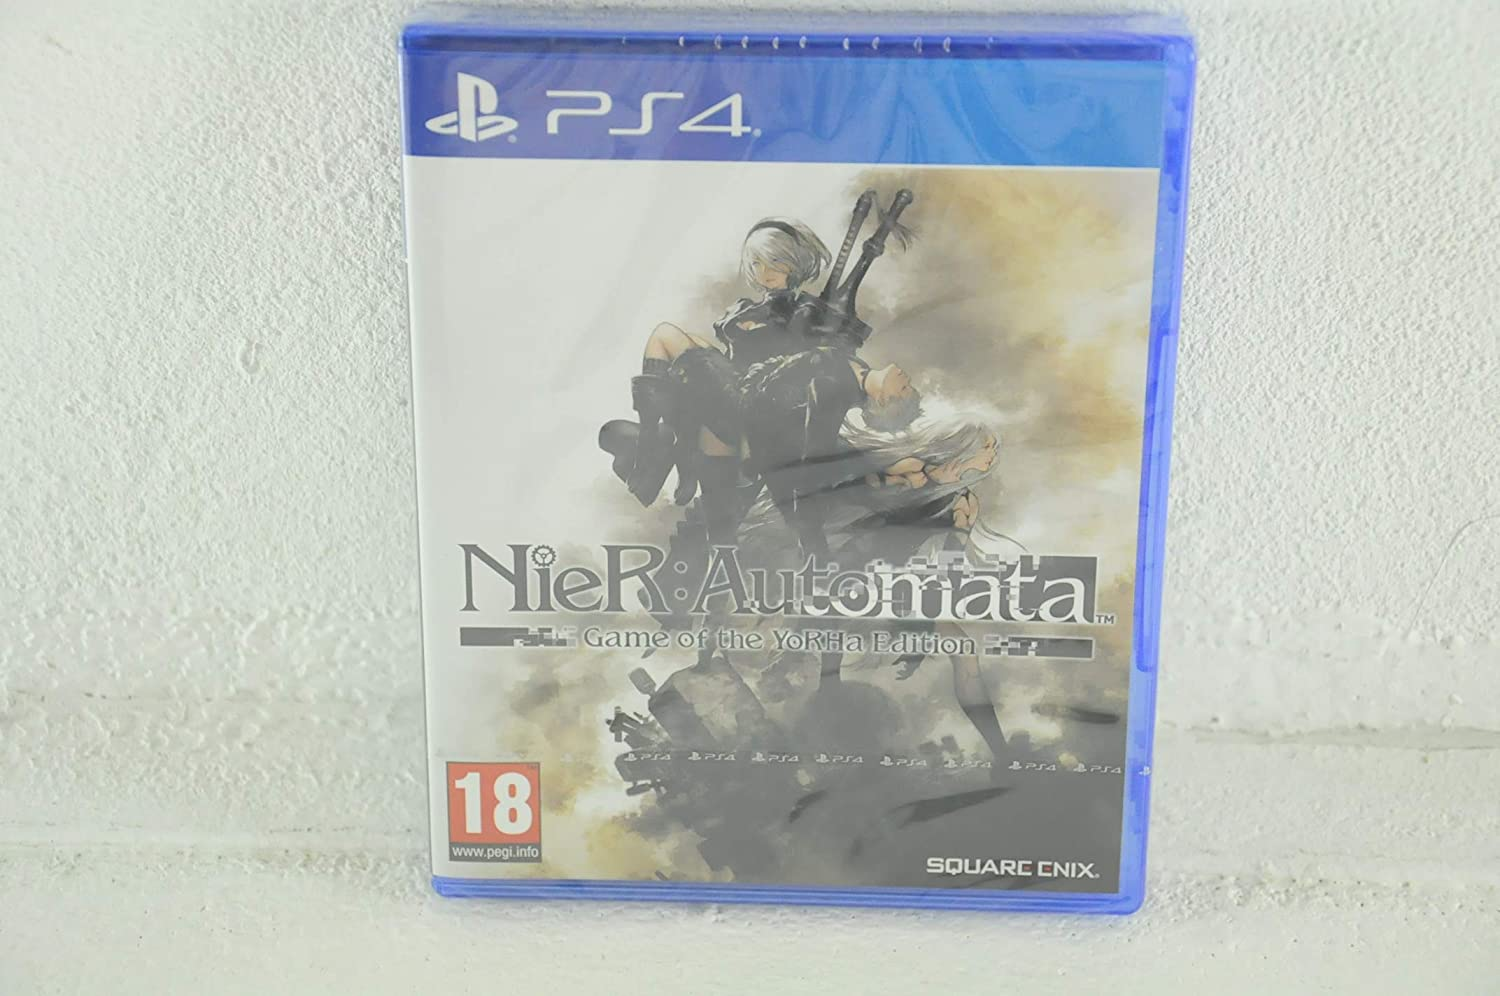 PS4 NieR: Automata Game of the YoRHa Edition: Amazon.es: Videojuegos